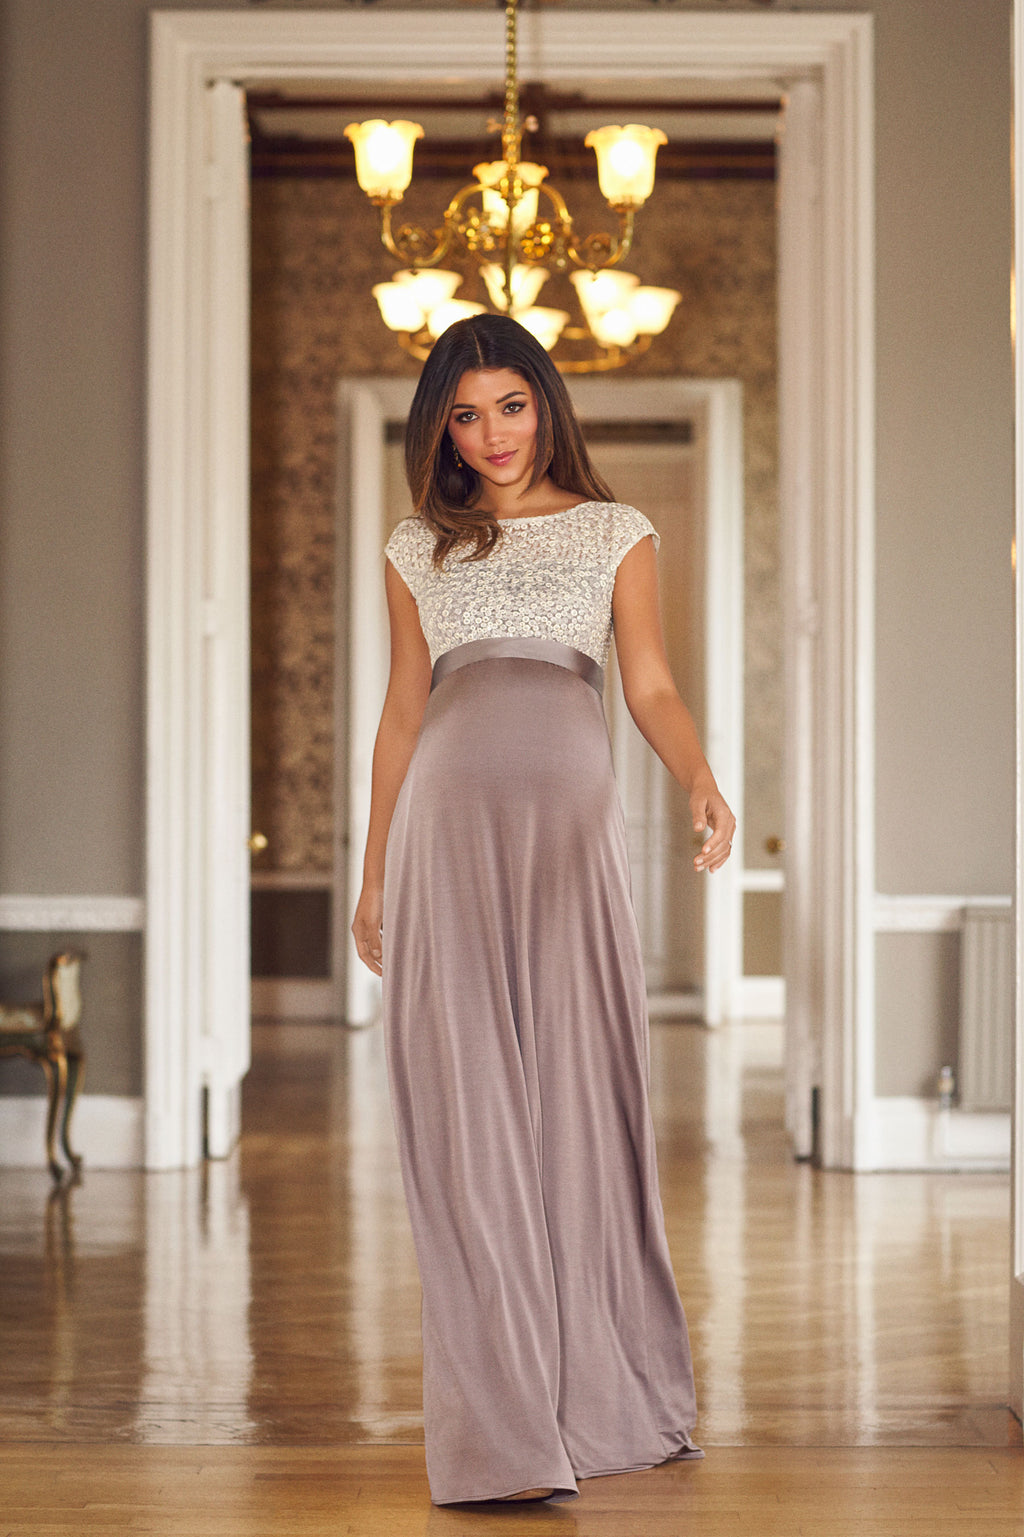 Tiffany Rose Mia Maternity Sequins Gown - Seven Women Maternity